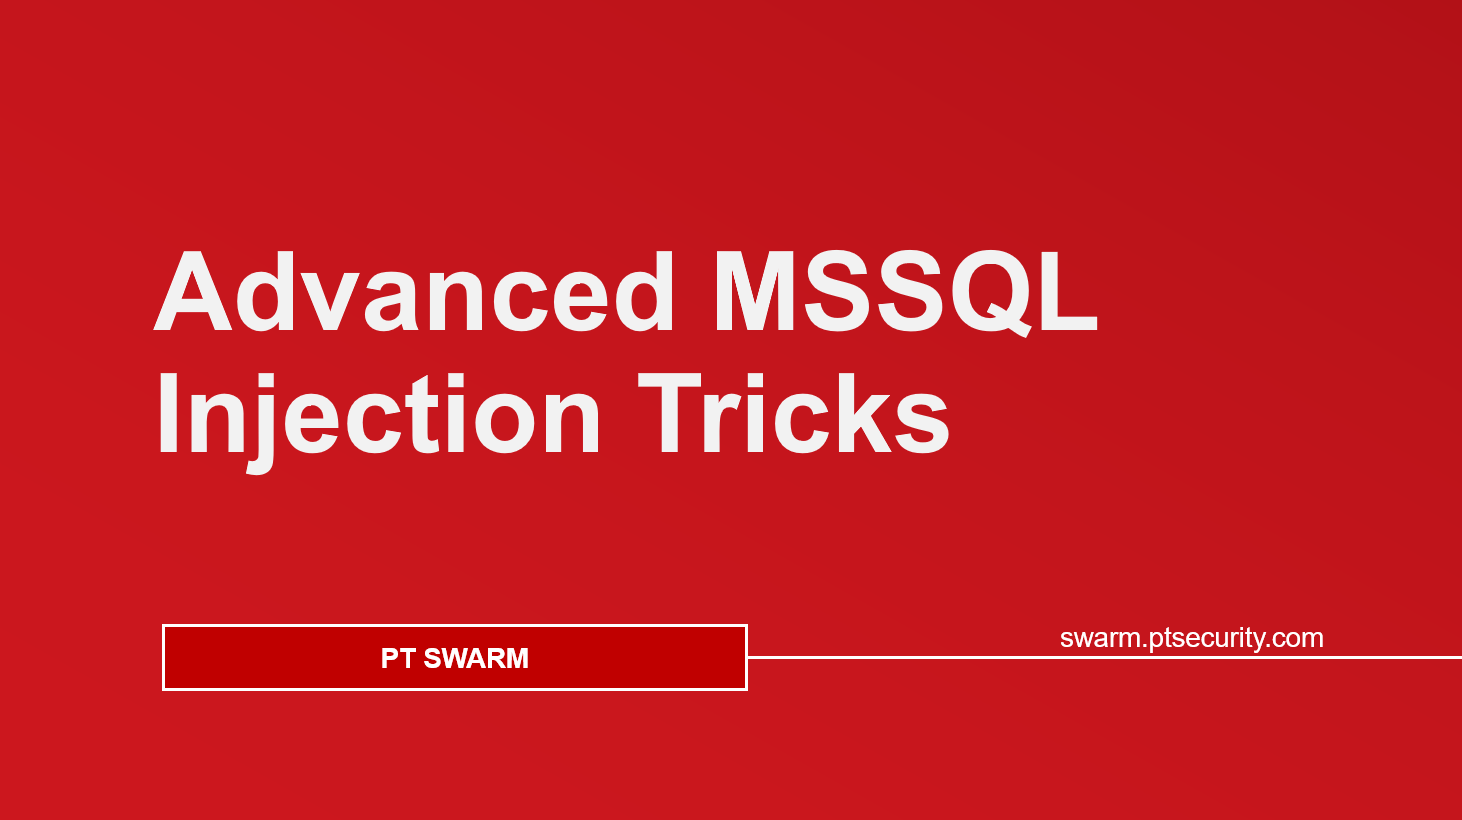 Advanced MSSQL Injection Tricks